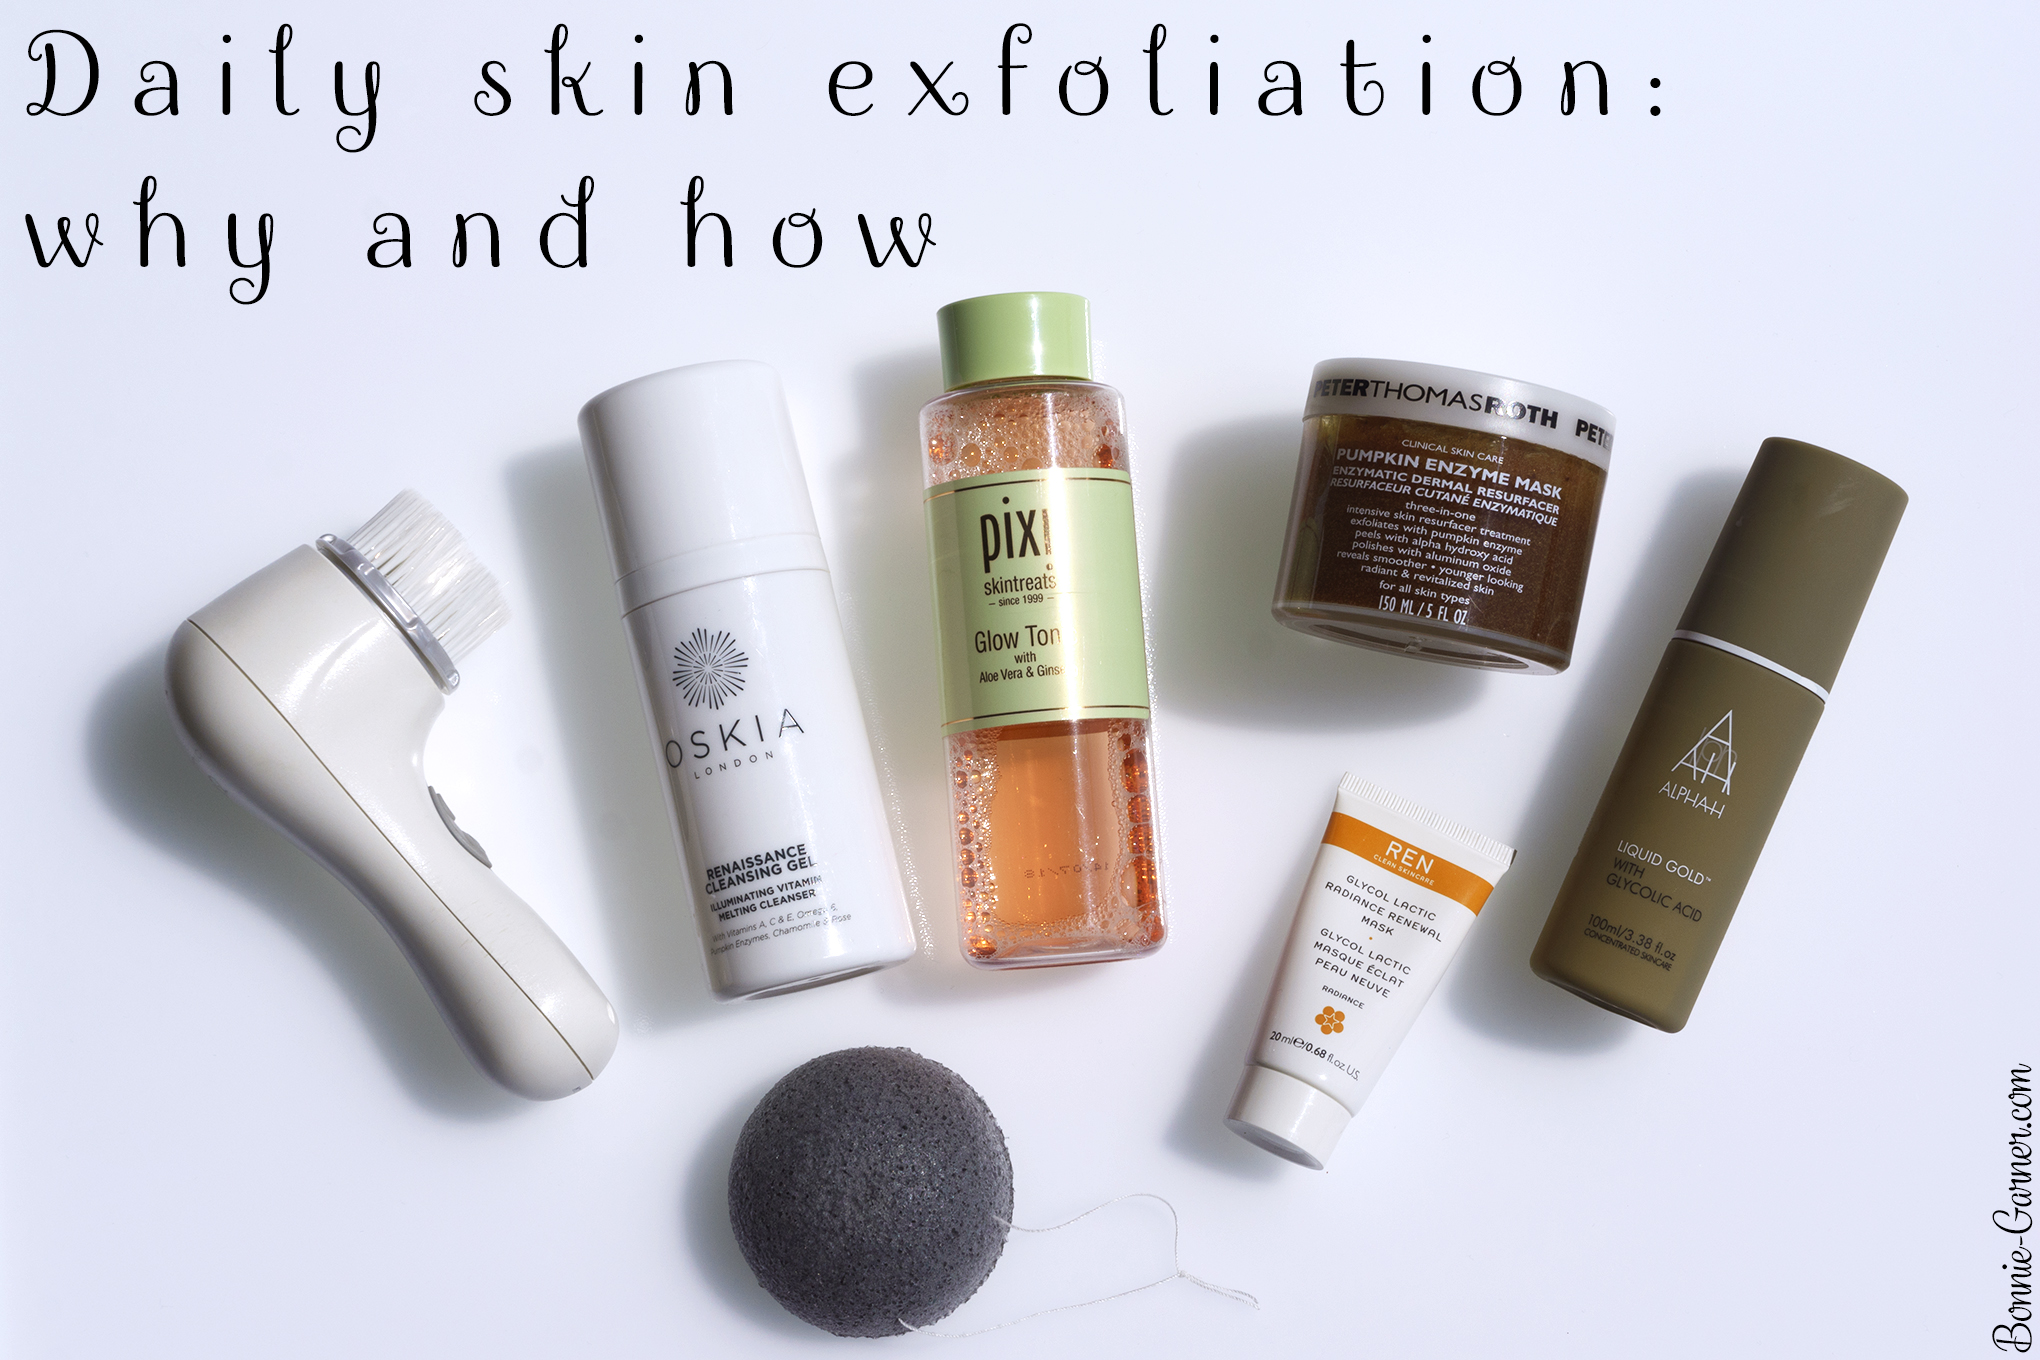 Daily skin exfoliation: why and how